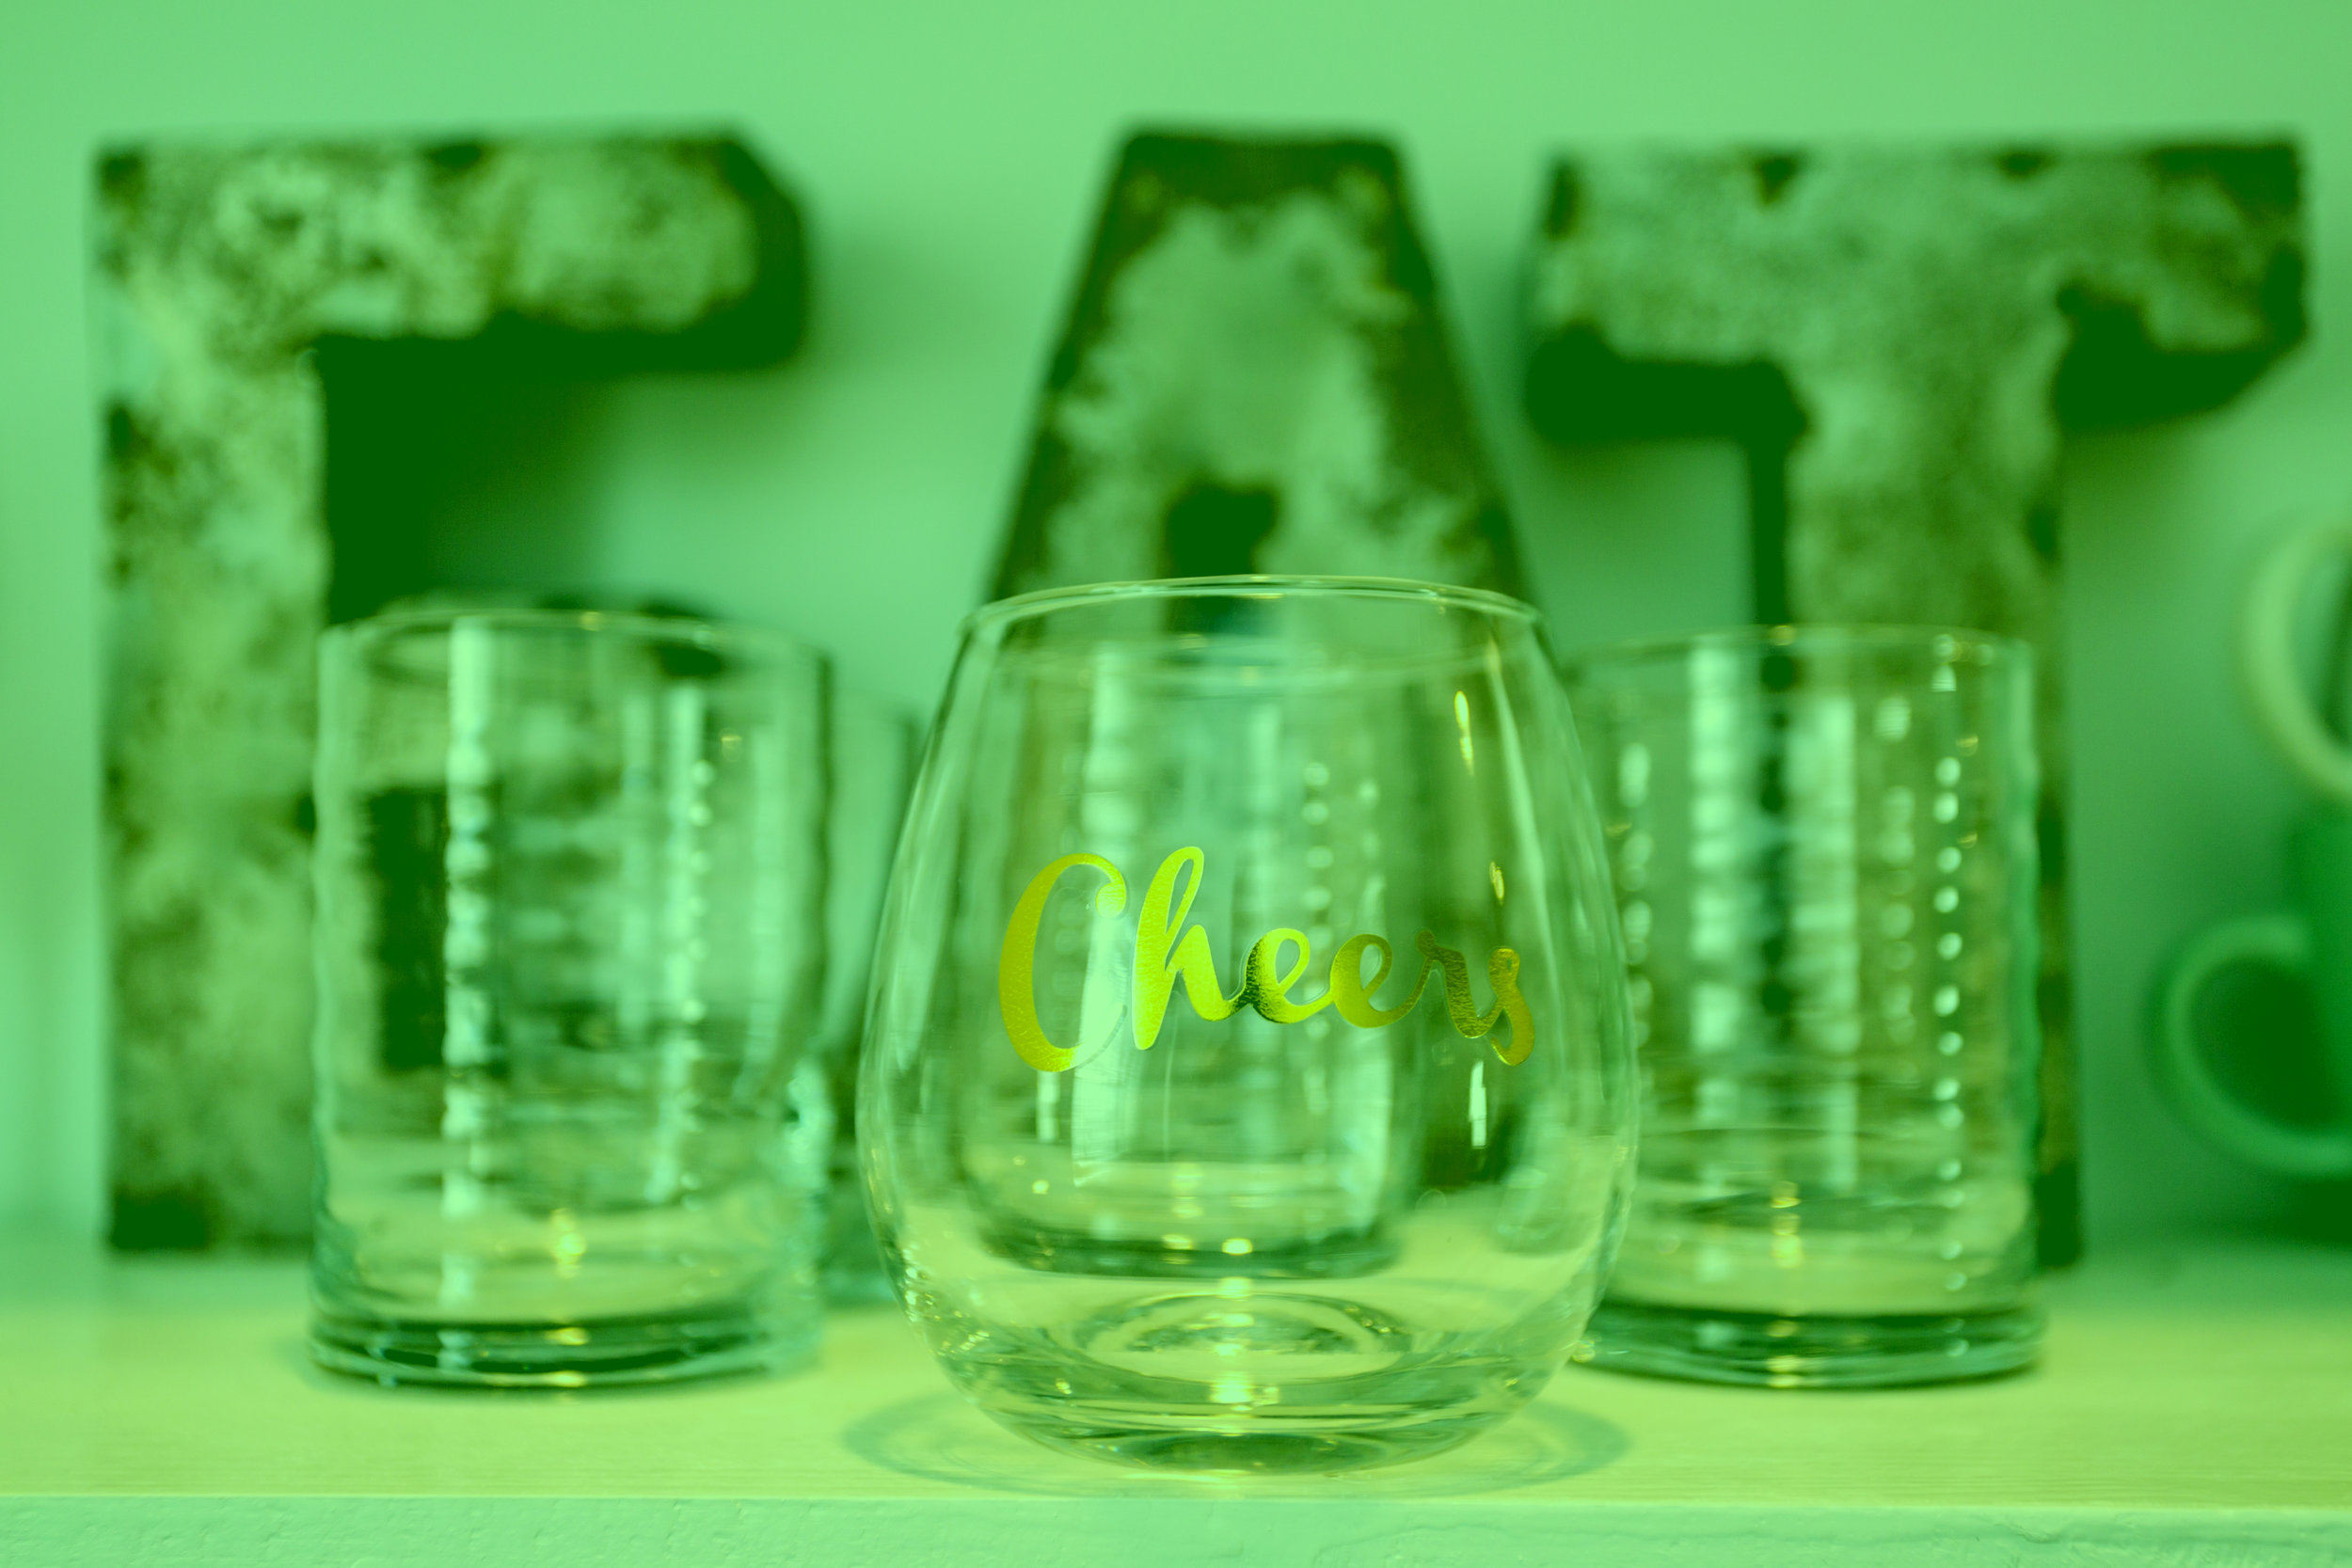 kitchen wine glasses up close_green.jpg